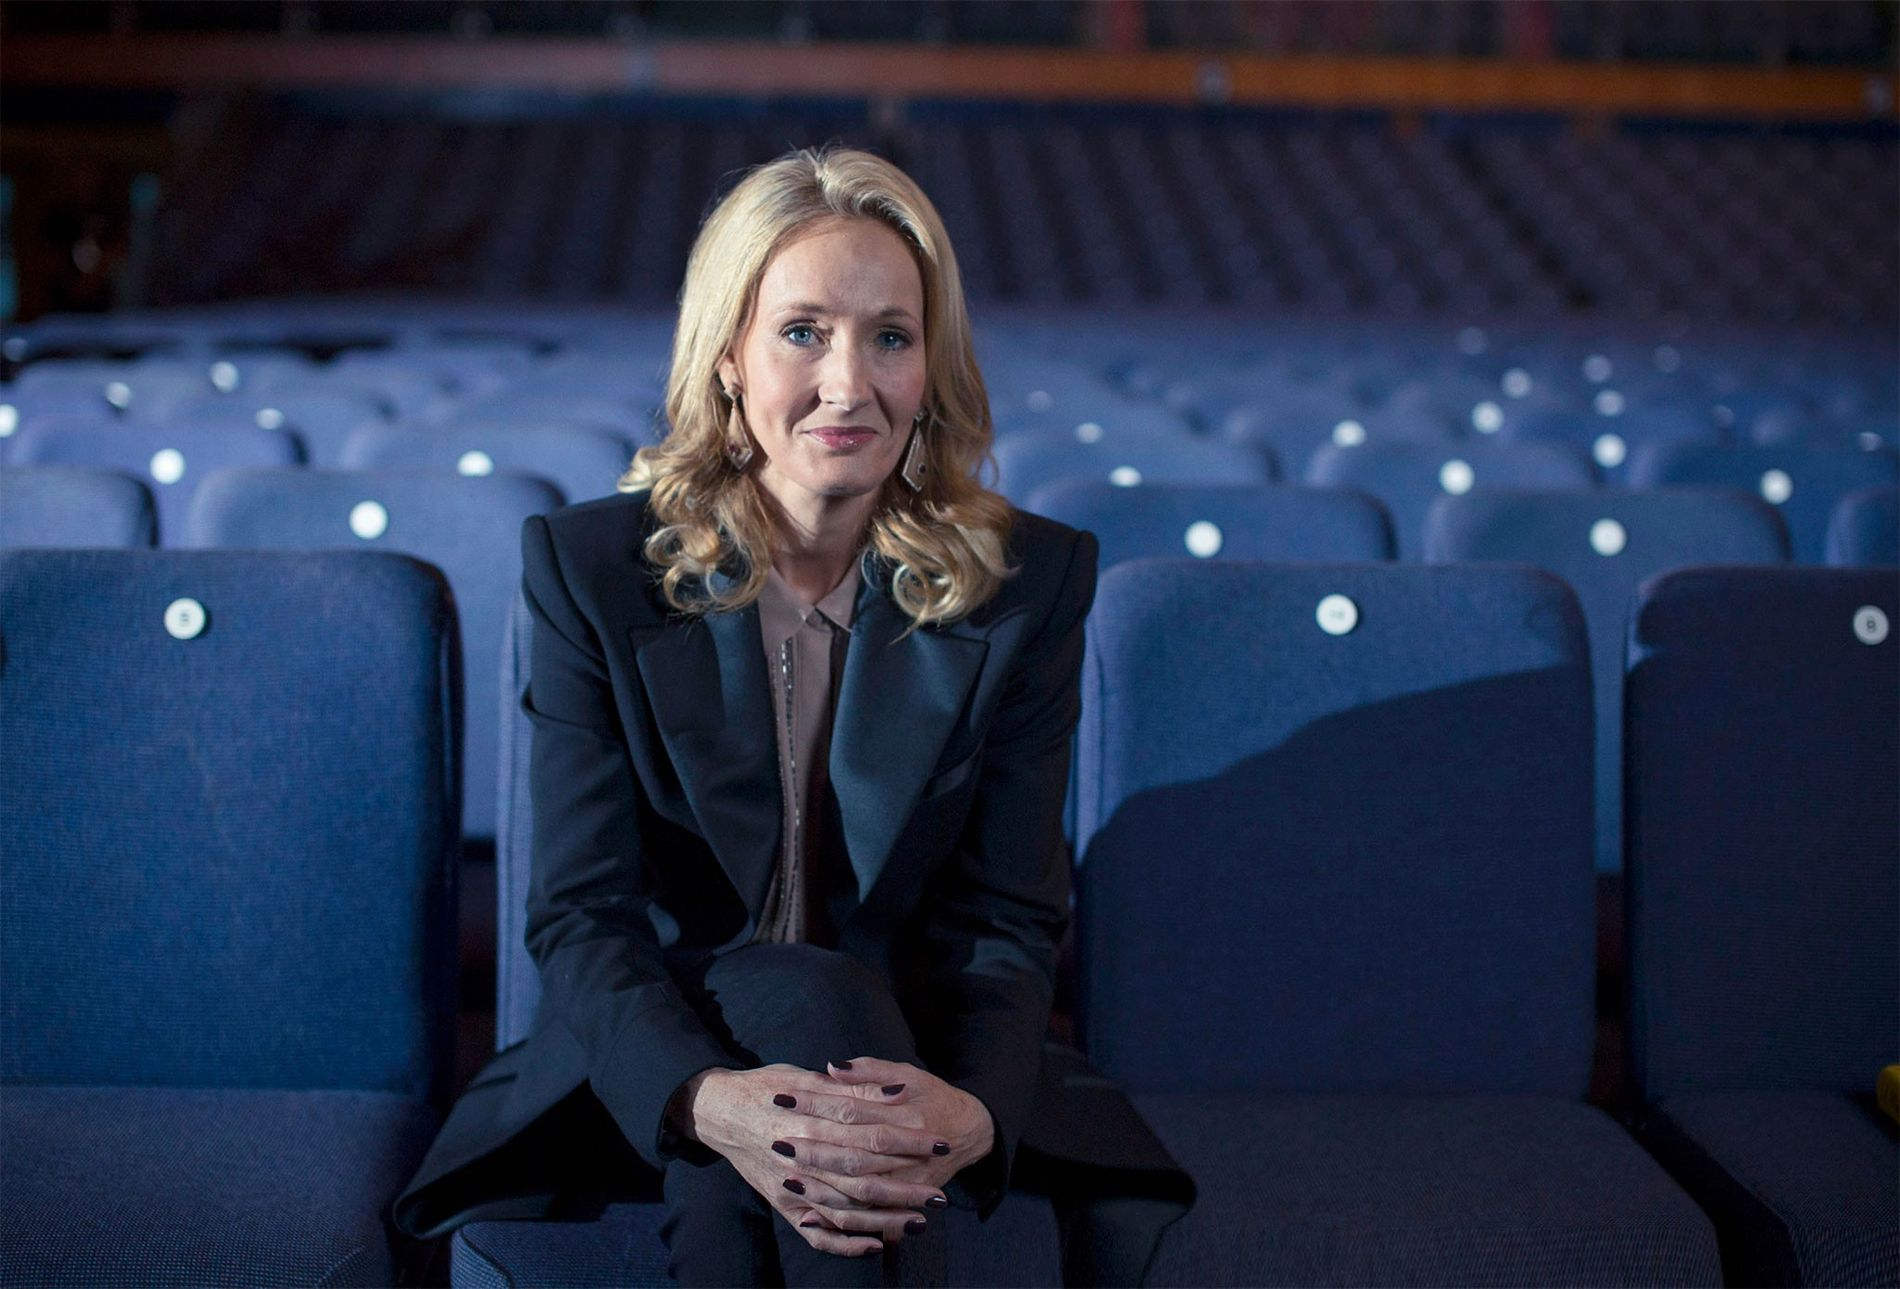 Joanne 'Jo' Rowling, pen name J. K. Rowling, is the British novelist, best known as the author of the Harry Potter fantasy series. The Potter books have gained worldwide attention, won multiple awards, and sold more than 400 million copies.